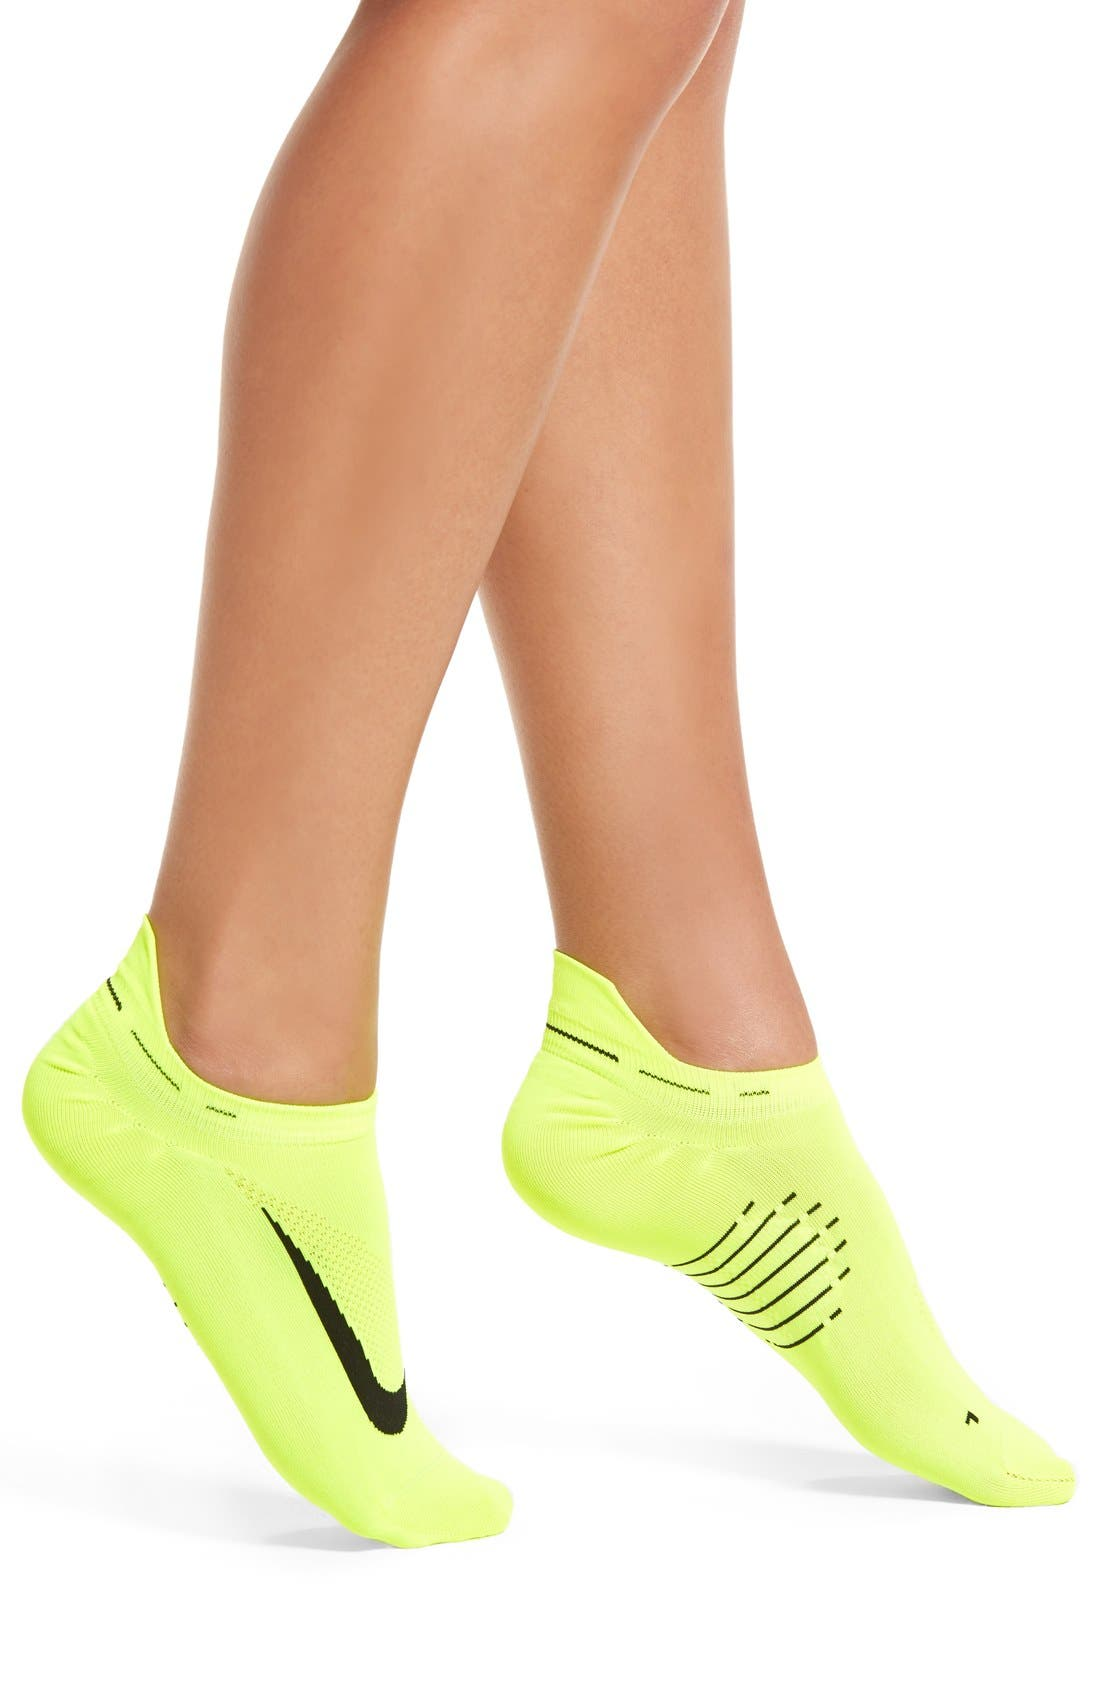 'Elite' No-Show Running Socks,                             Main thumbnail 1, color,                             Volt/ Black